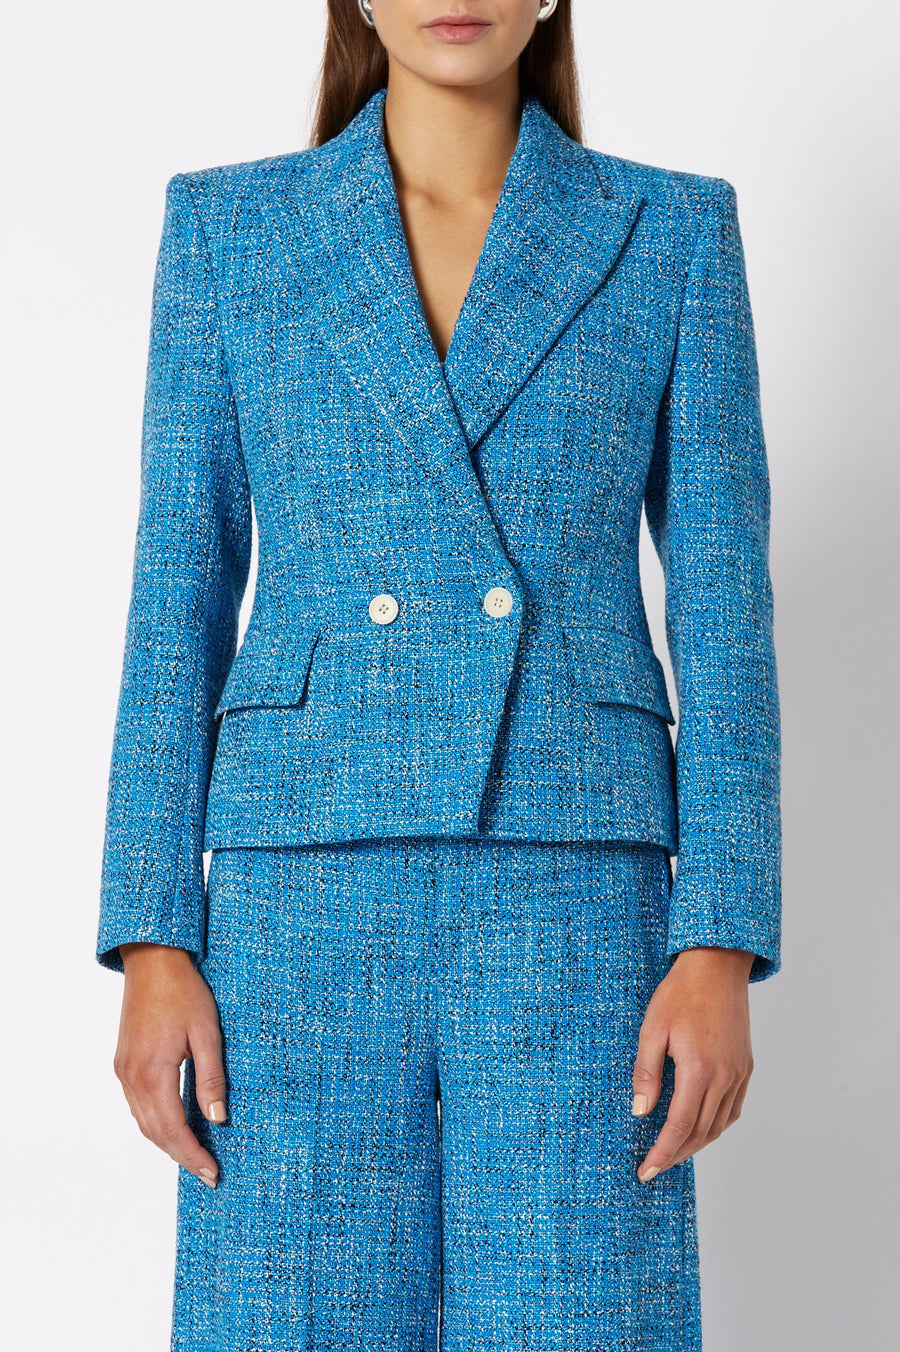 TWEED JACKET AZURE, Double-breasted closure, Side pockets